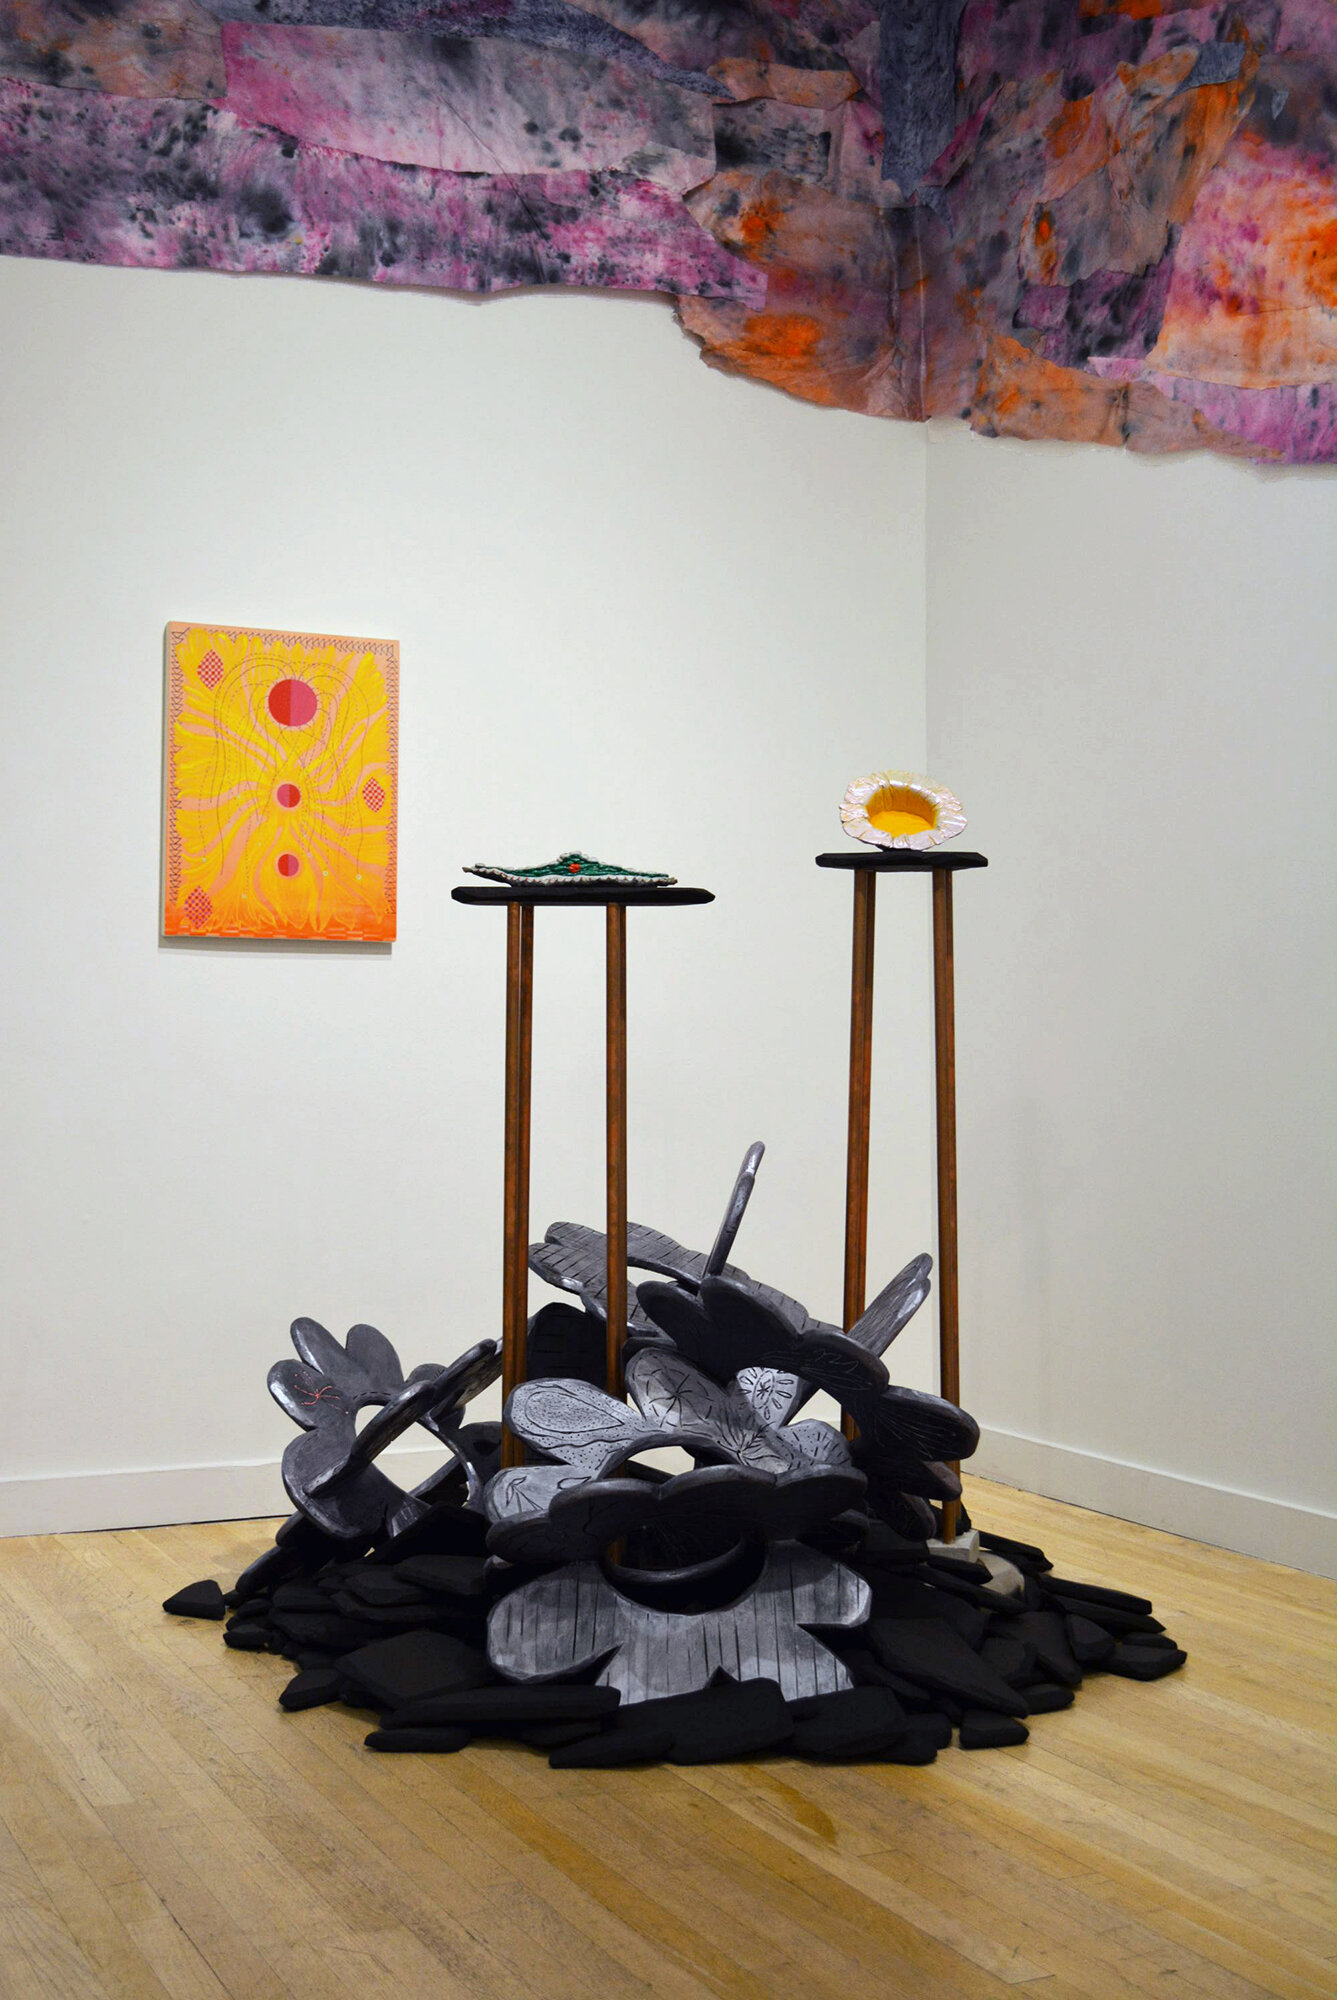 Installation view of Natessa Amin:  Hyphen .  [Image description: Installation view of the sculptures  Cooking Flower  and  Above Sea Level,  which sit on two metal pedestals. The pedestals are surrounded at the base by large, silver floral sculptures and a pile of charcoal-colored rubble made of foam. Behind the sculptures you can see Amin's wallpaper and the painting  I plunge my hands into the sun .]